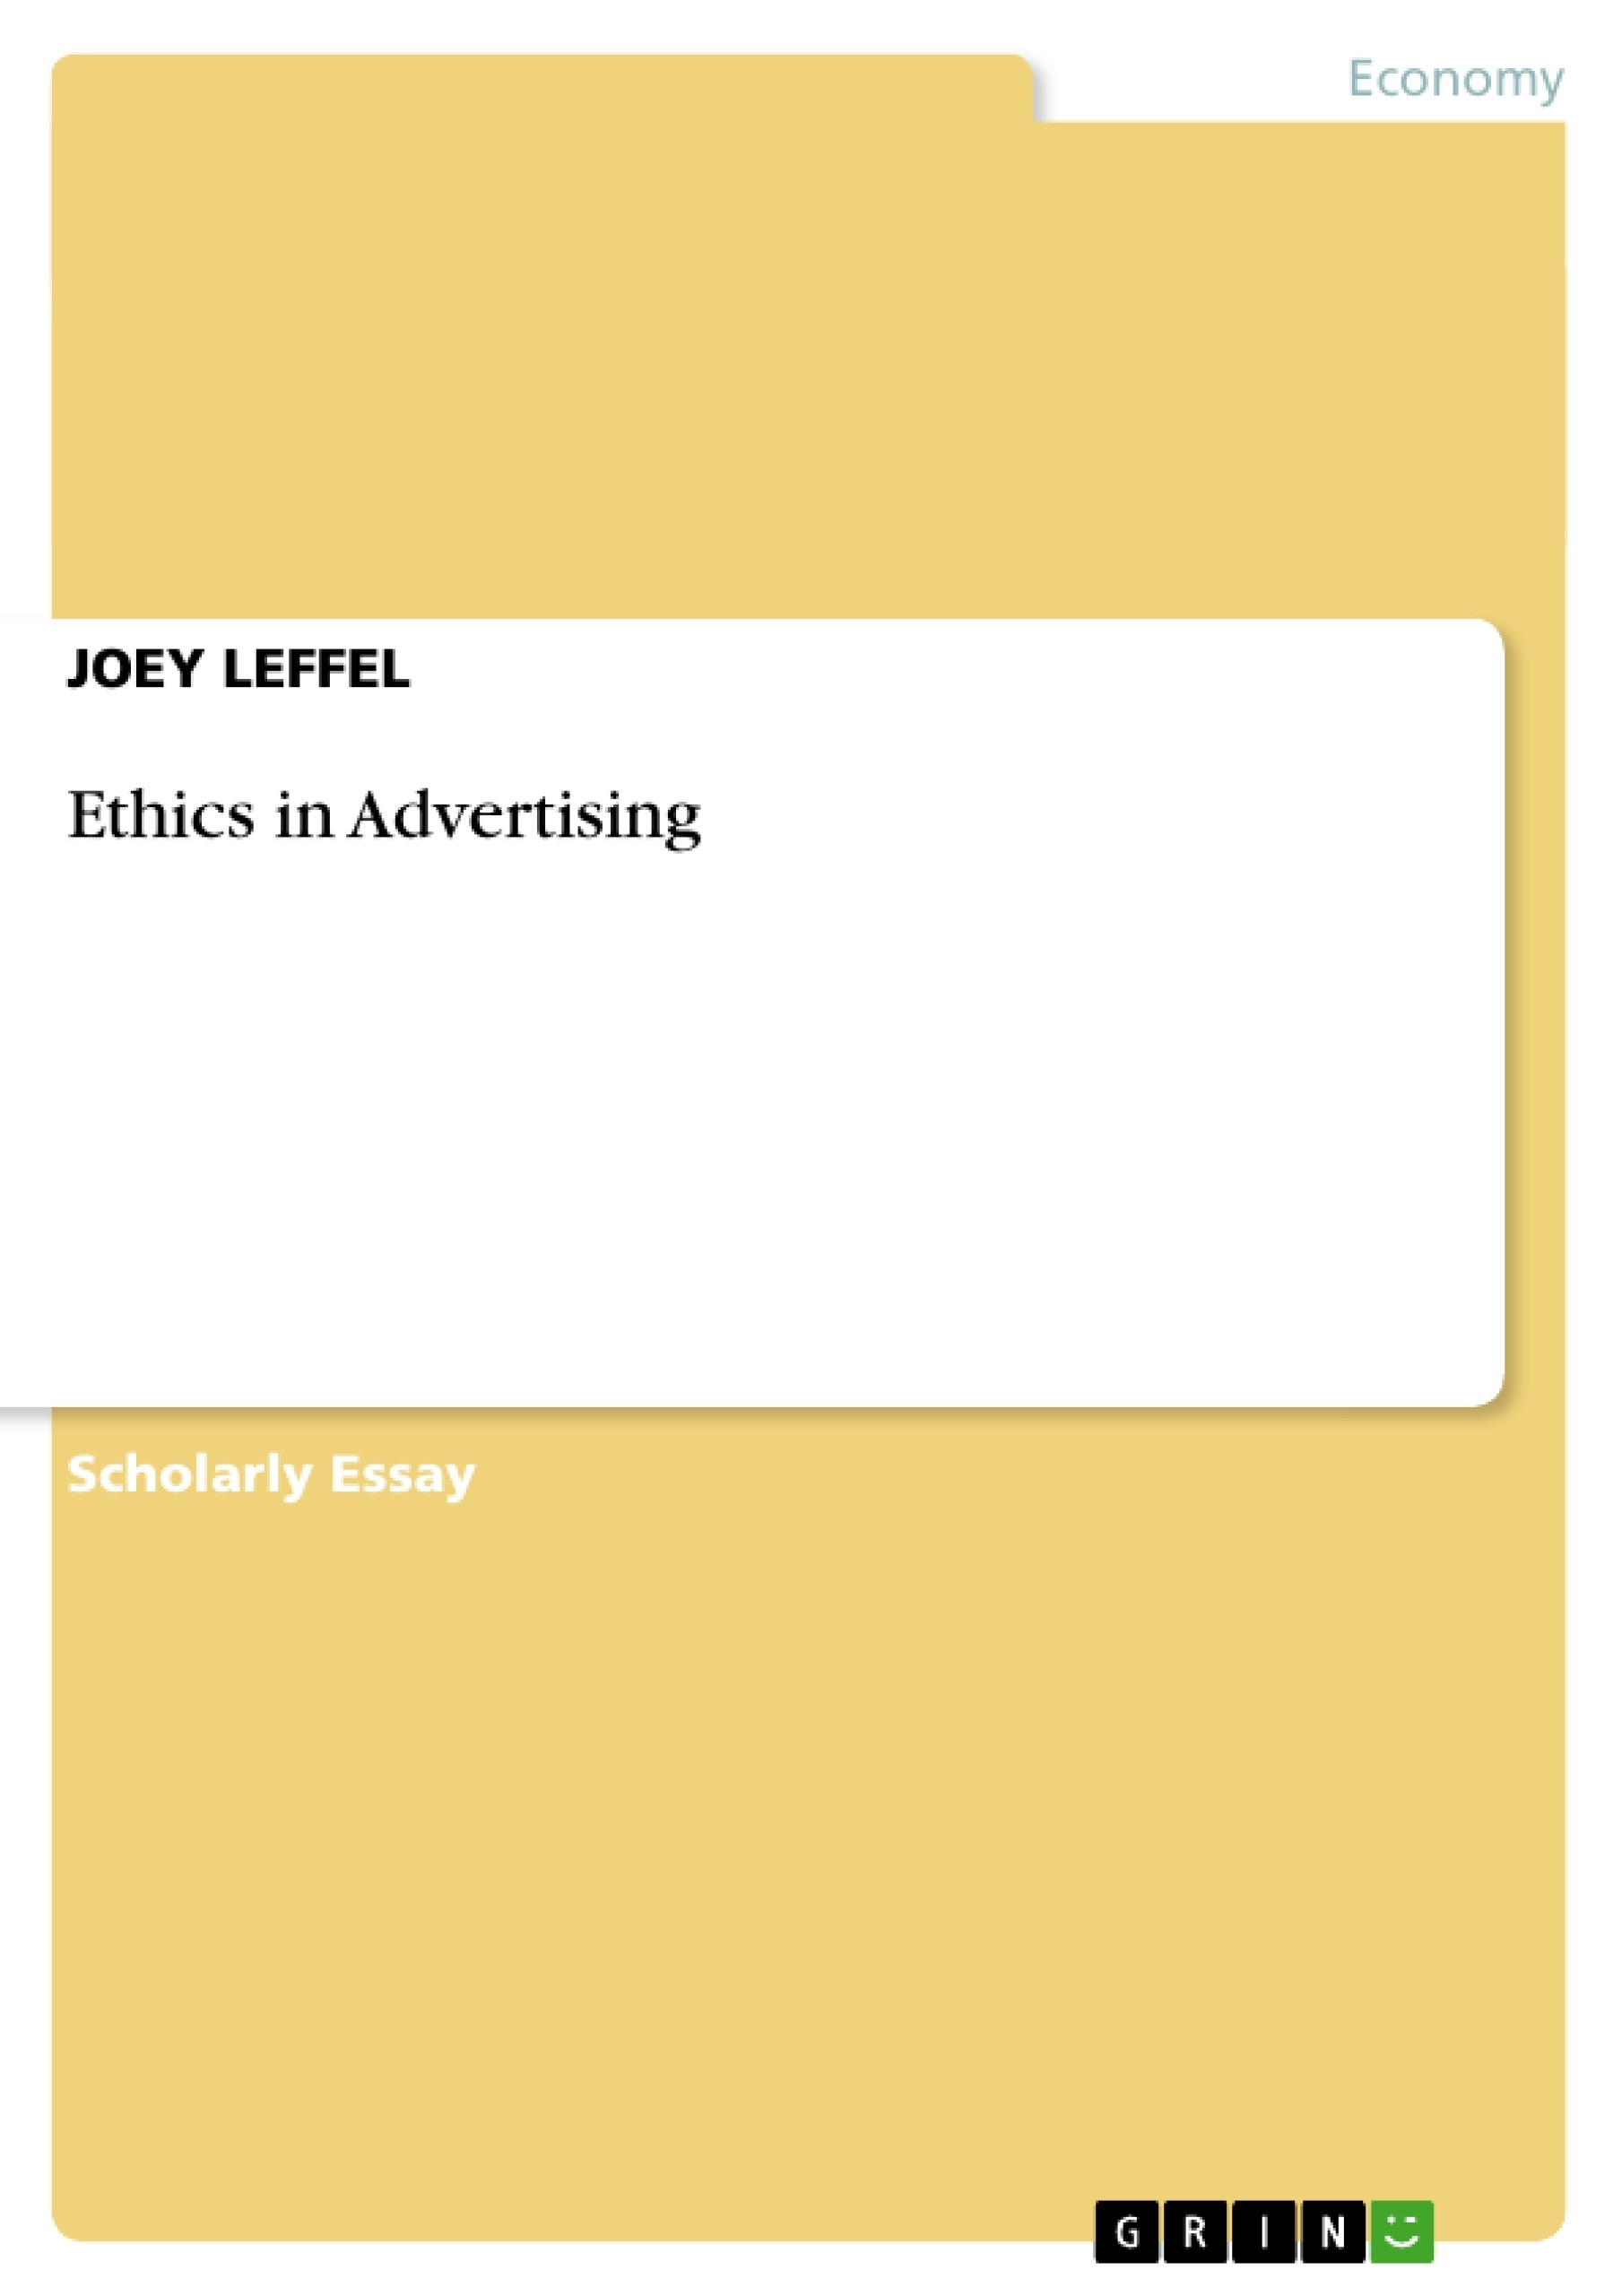 ethic in advertising essay Ethics in advertising - joey leffel - scientific essay - business economics - business ethics, corporate ethics - publish your bachelor's or master's thesis, dissertation, term paper or.